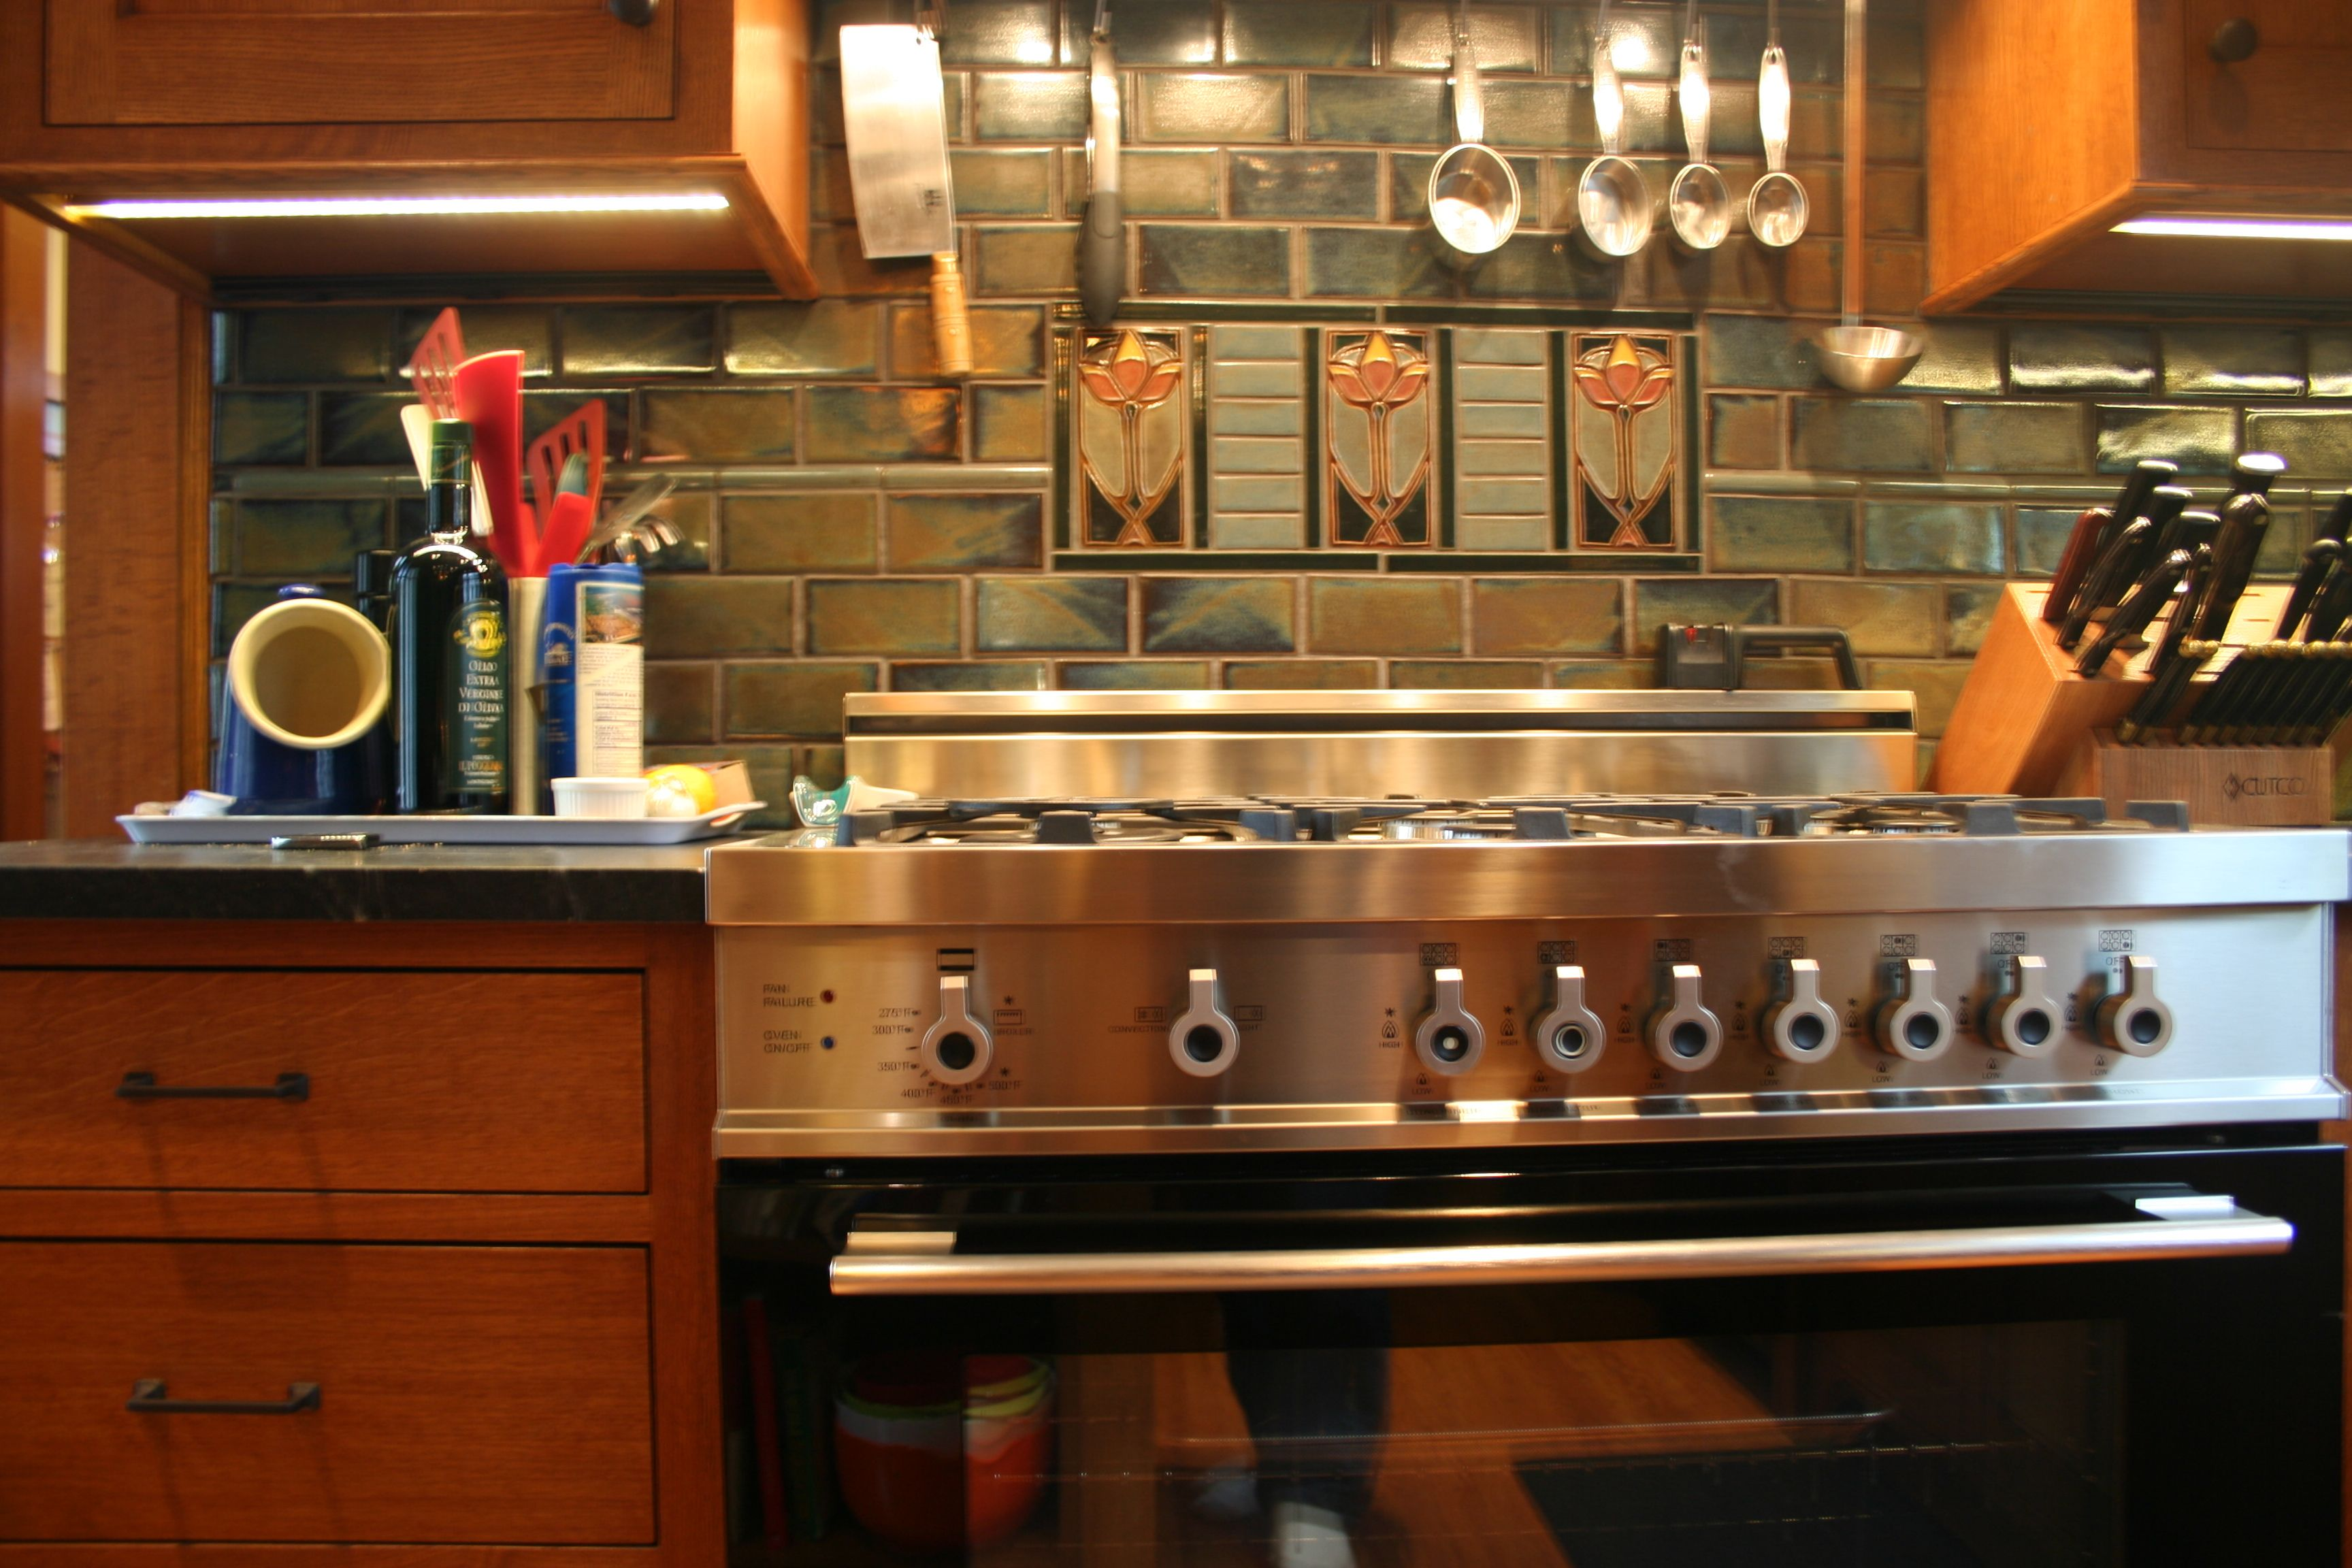 North prairie tileworks craftsman craftsman style and kitchen decorative arts crafts backsplash on the arts crafts designs with its dailygadgetfo Choice Image